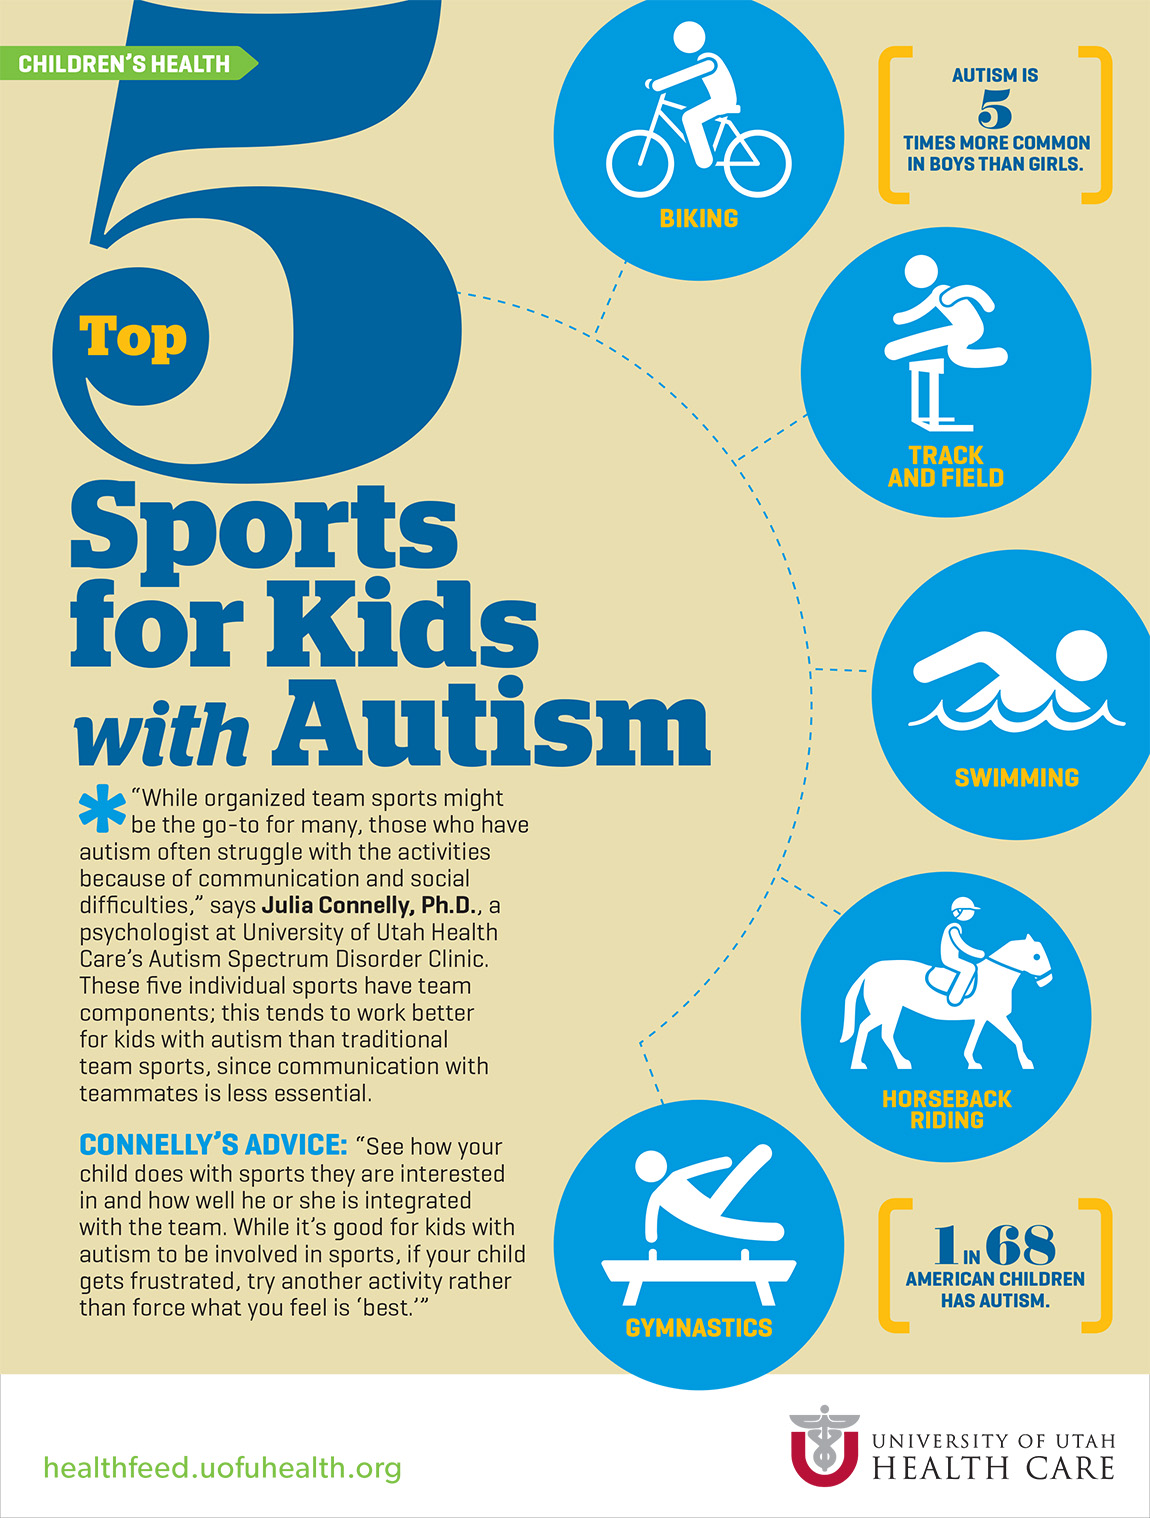 Top 5 Sports for Kids with Autism